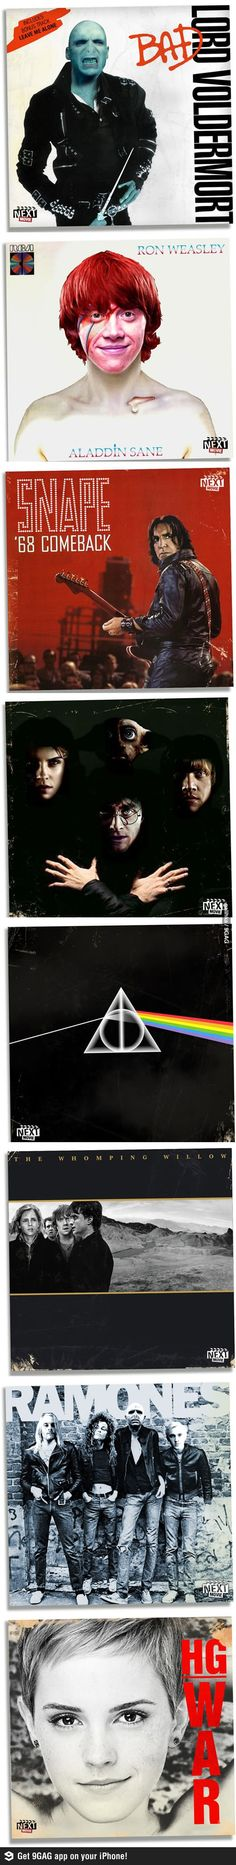 Harry potter x classic album covers